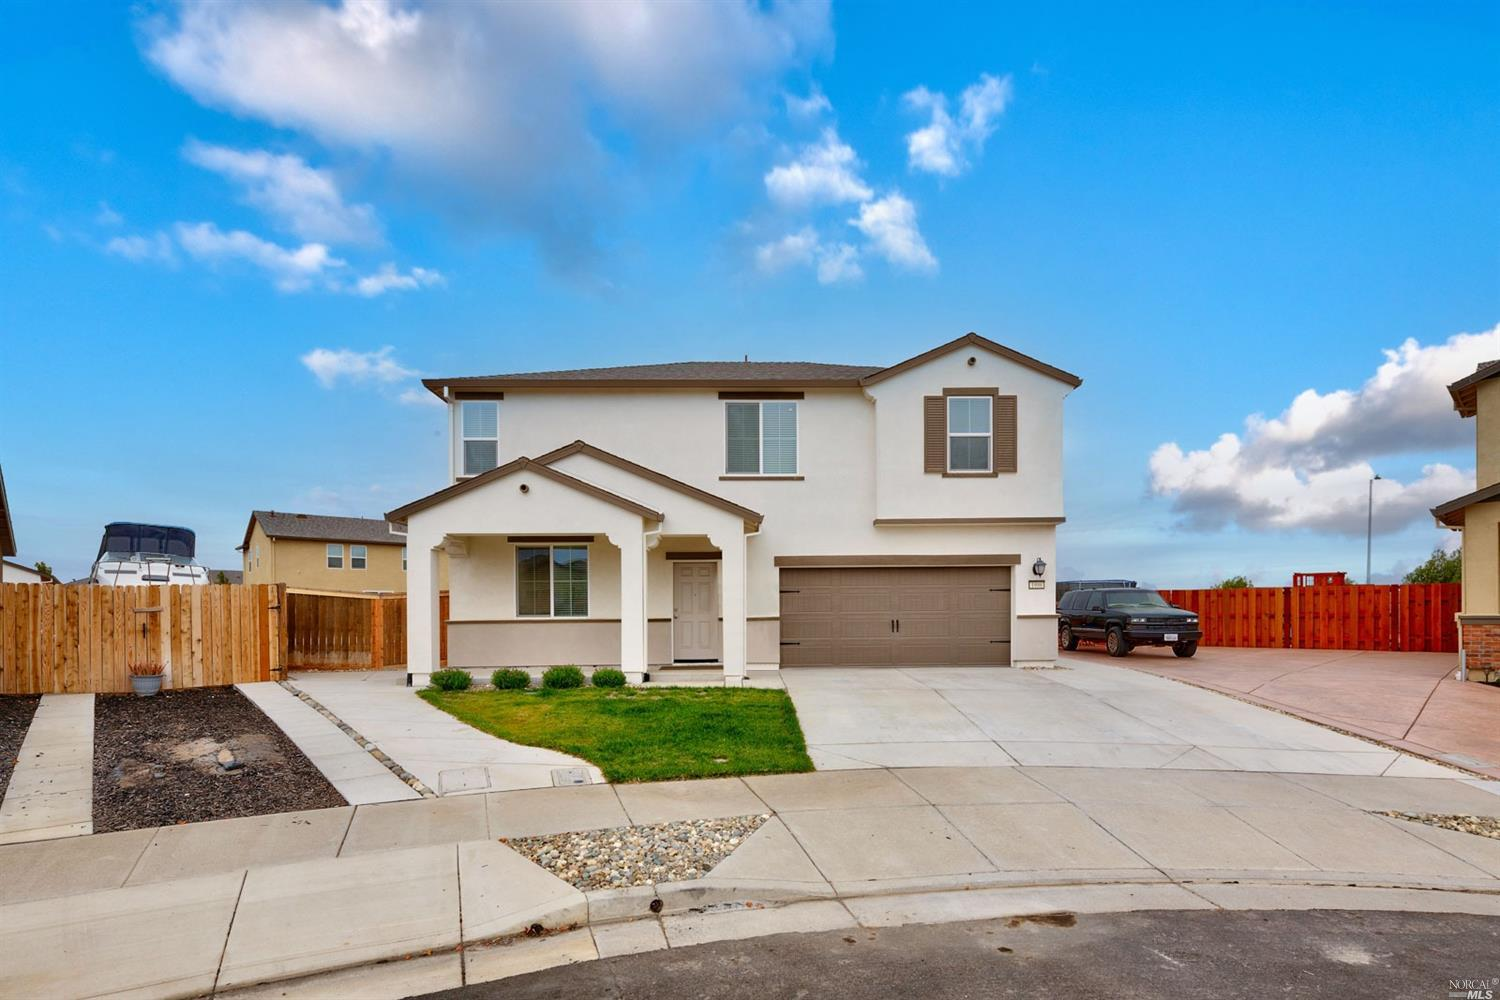 Almost 10,0000 Square feet lot. One of the biggest in the neighborhood waiting for your own ideas. A